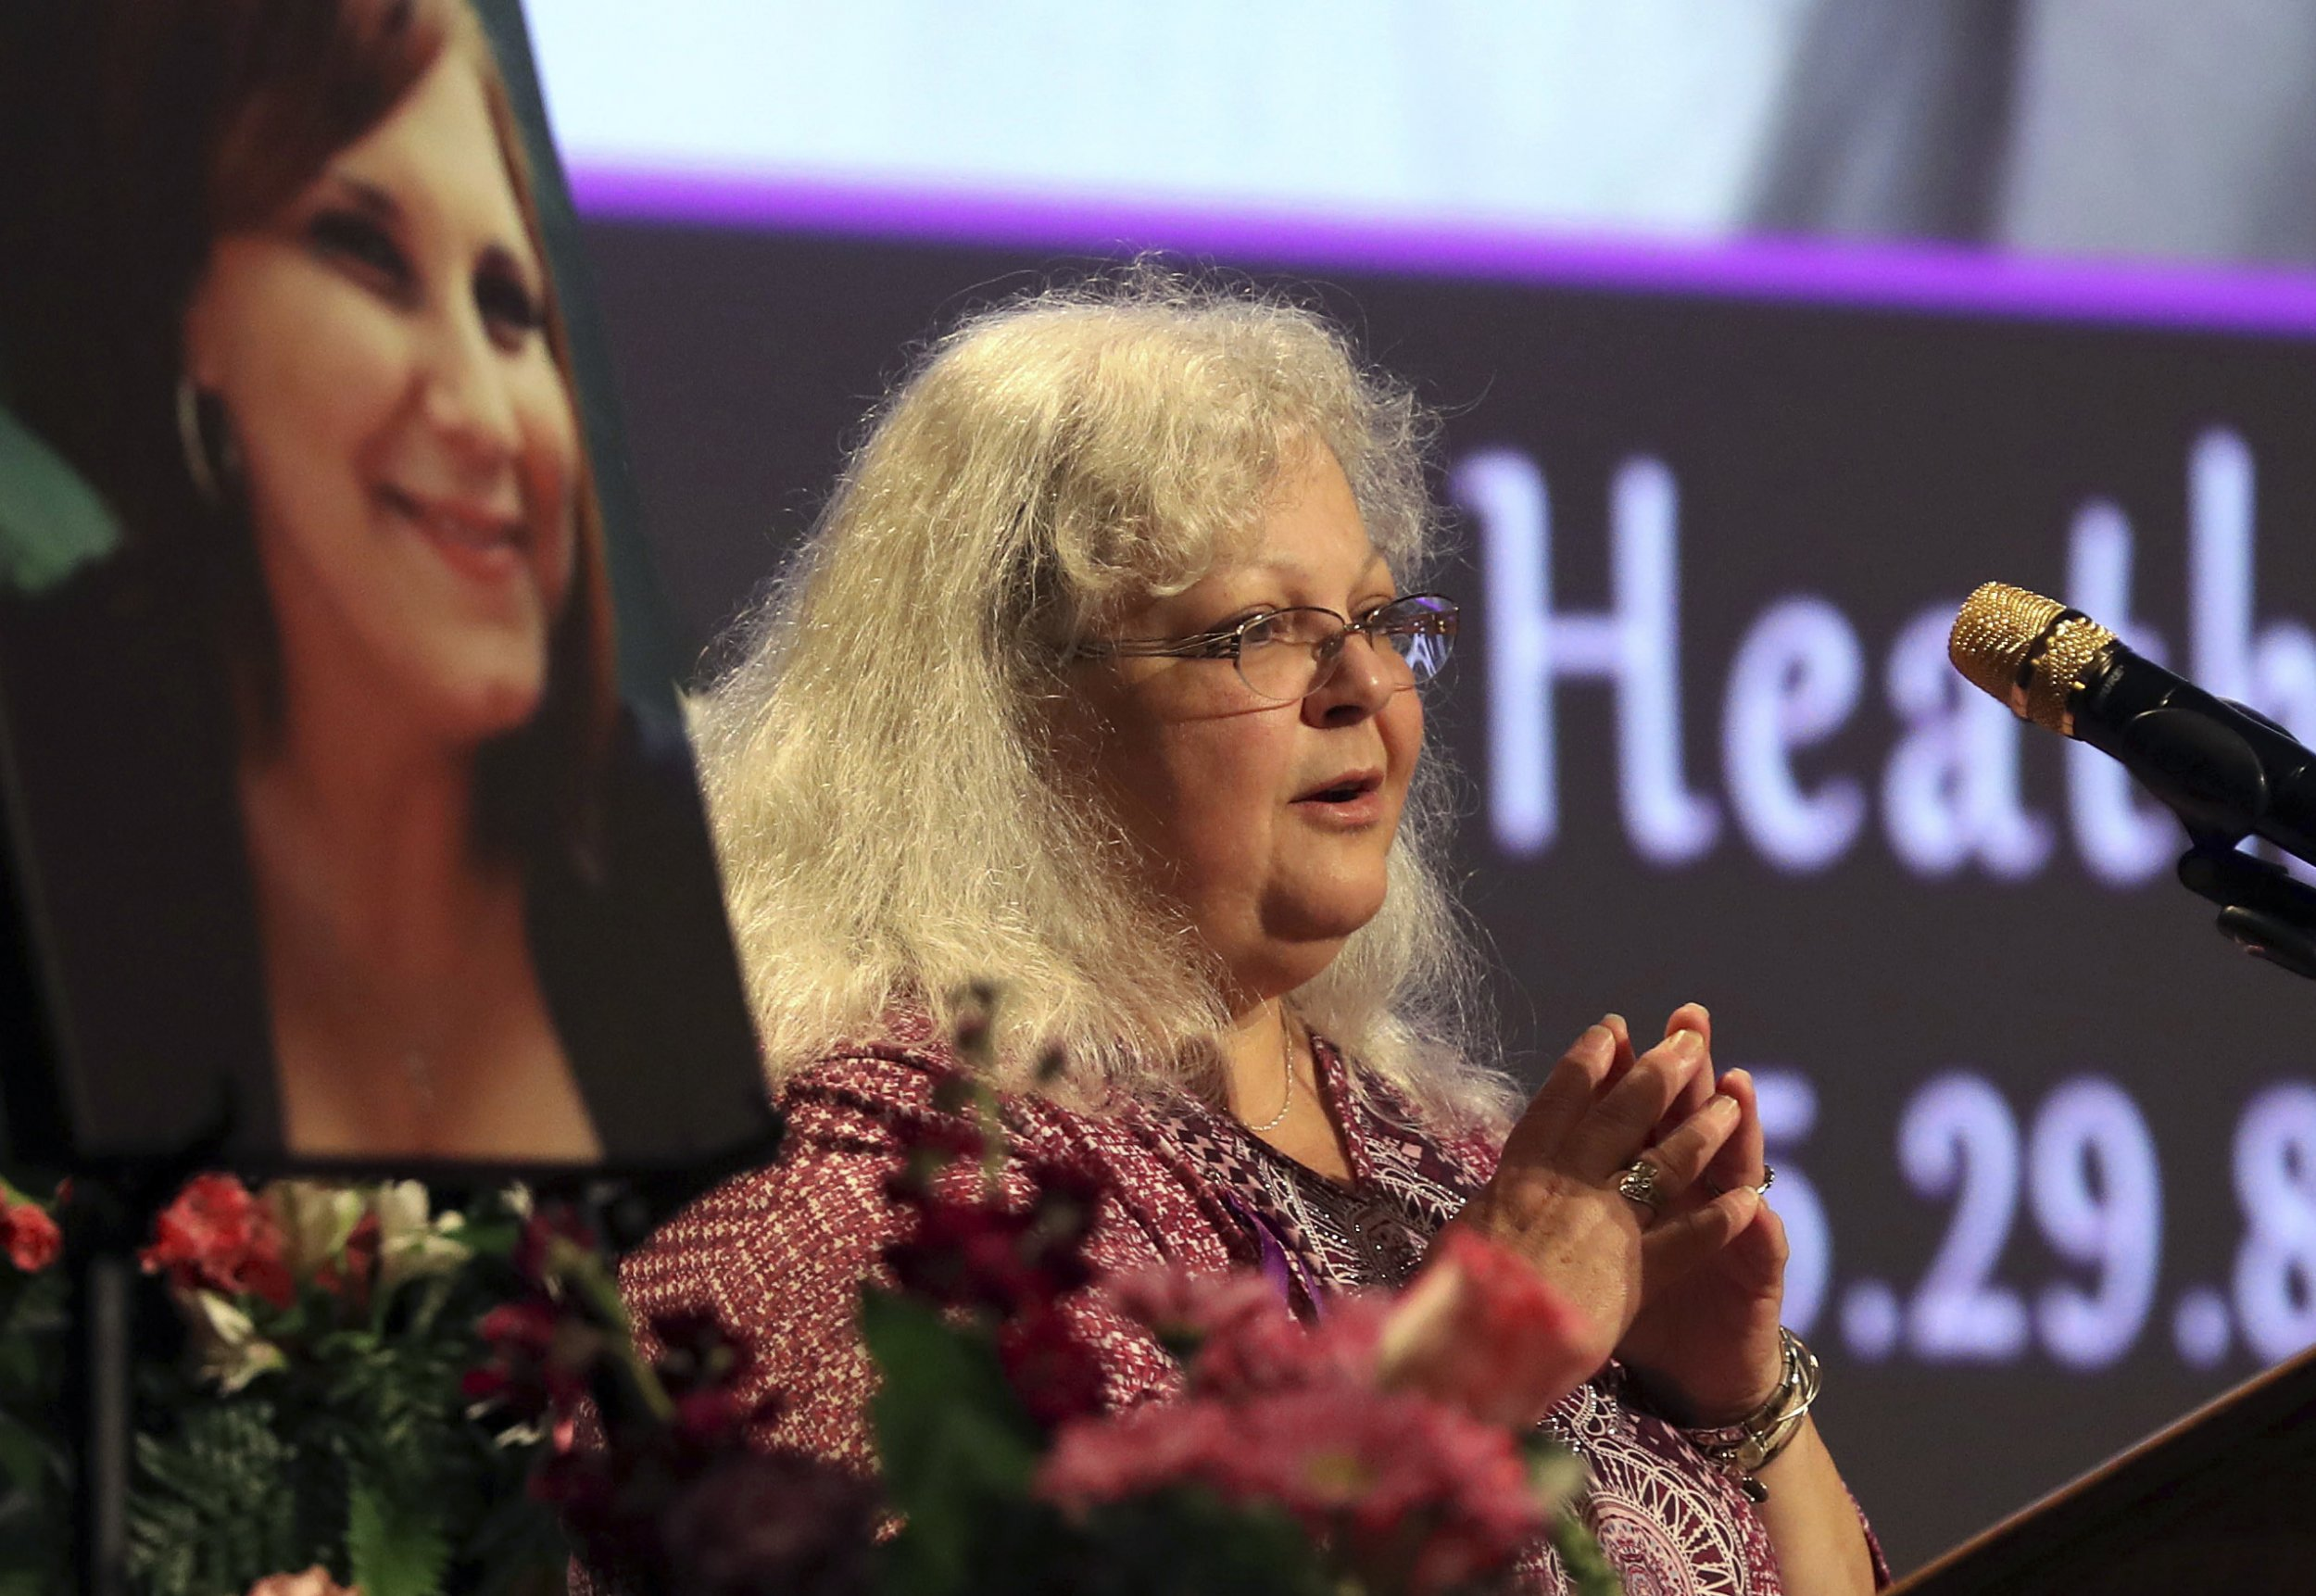 Charlottesville rally, Heather Heyer mother trump